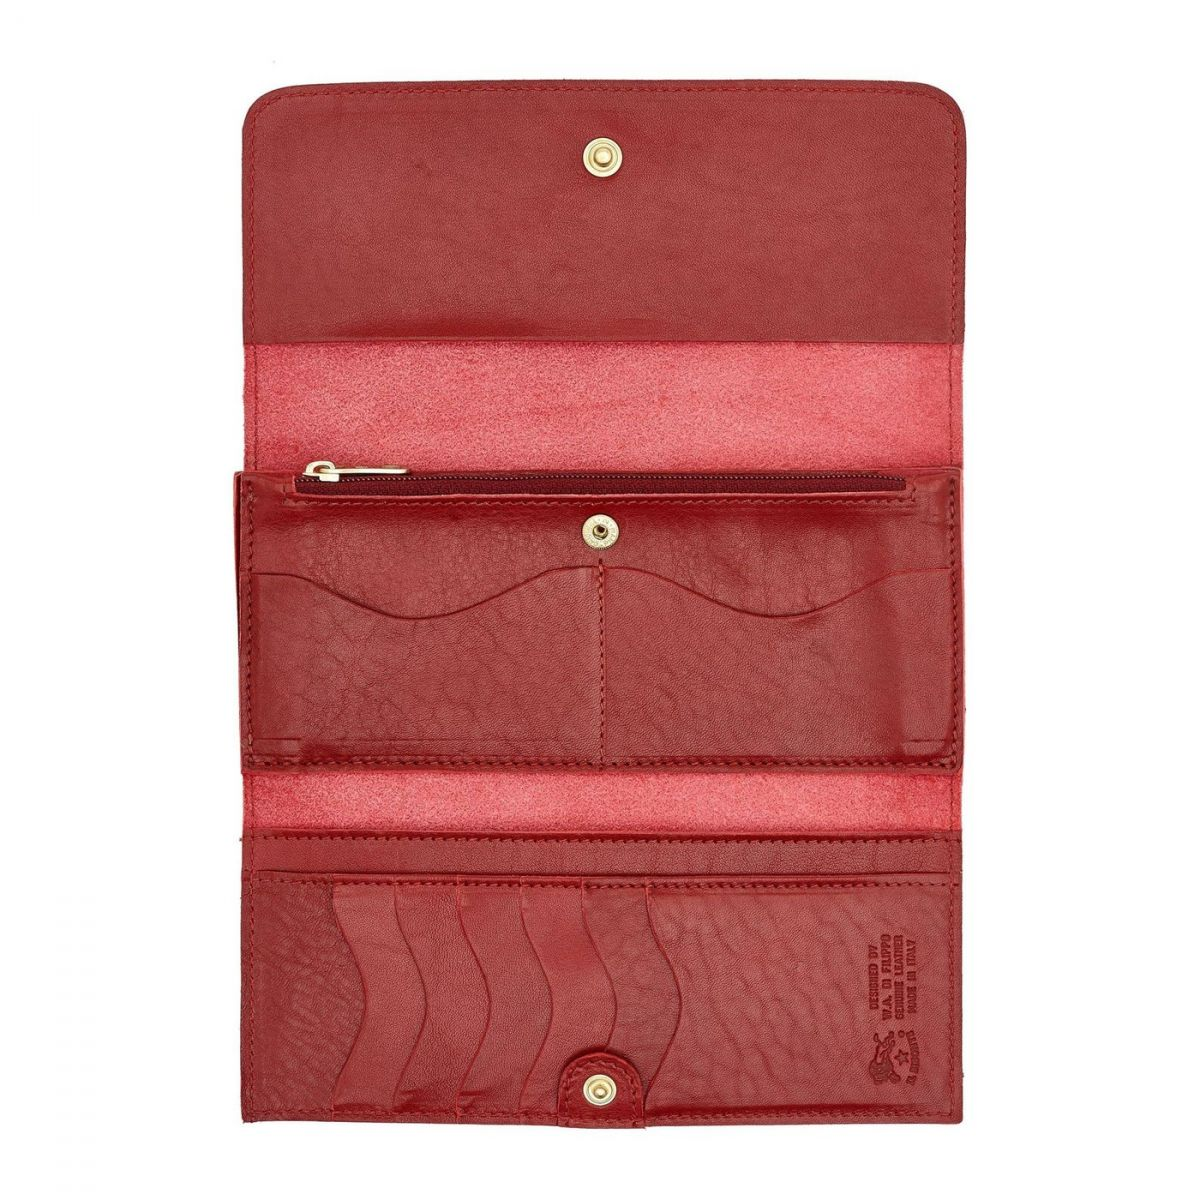 Women's Continental Wallet  in Cowhide Double Leather SCW009 color Red | Details